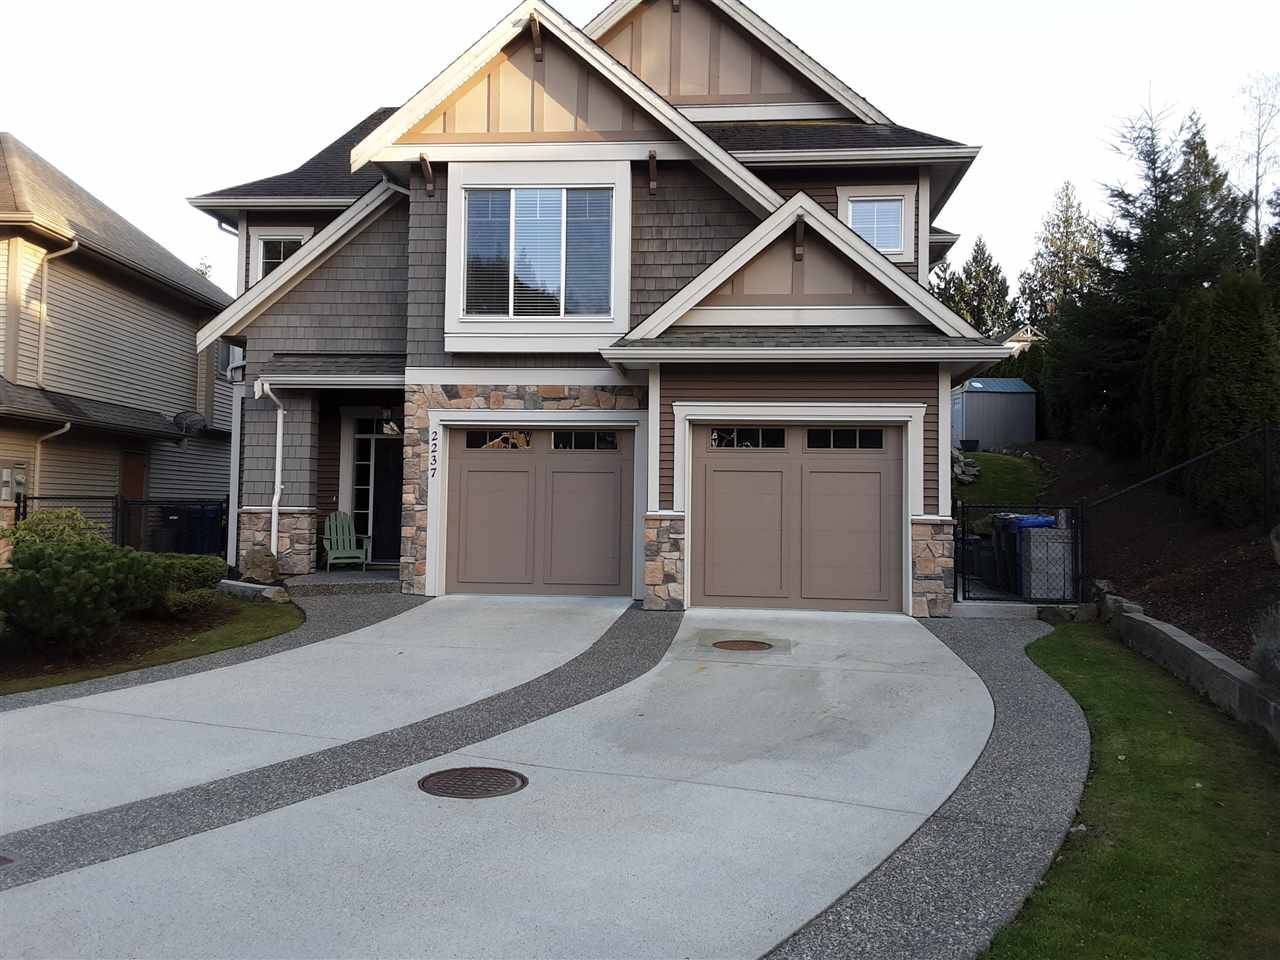 """Photo 2: Photos: 2237 CAMERON Crescent in Abbotsford: Abbotsford East House for sale in """"DEERWOOD ESTATES"""" : MLS®# R2562086"""